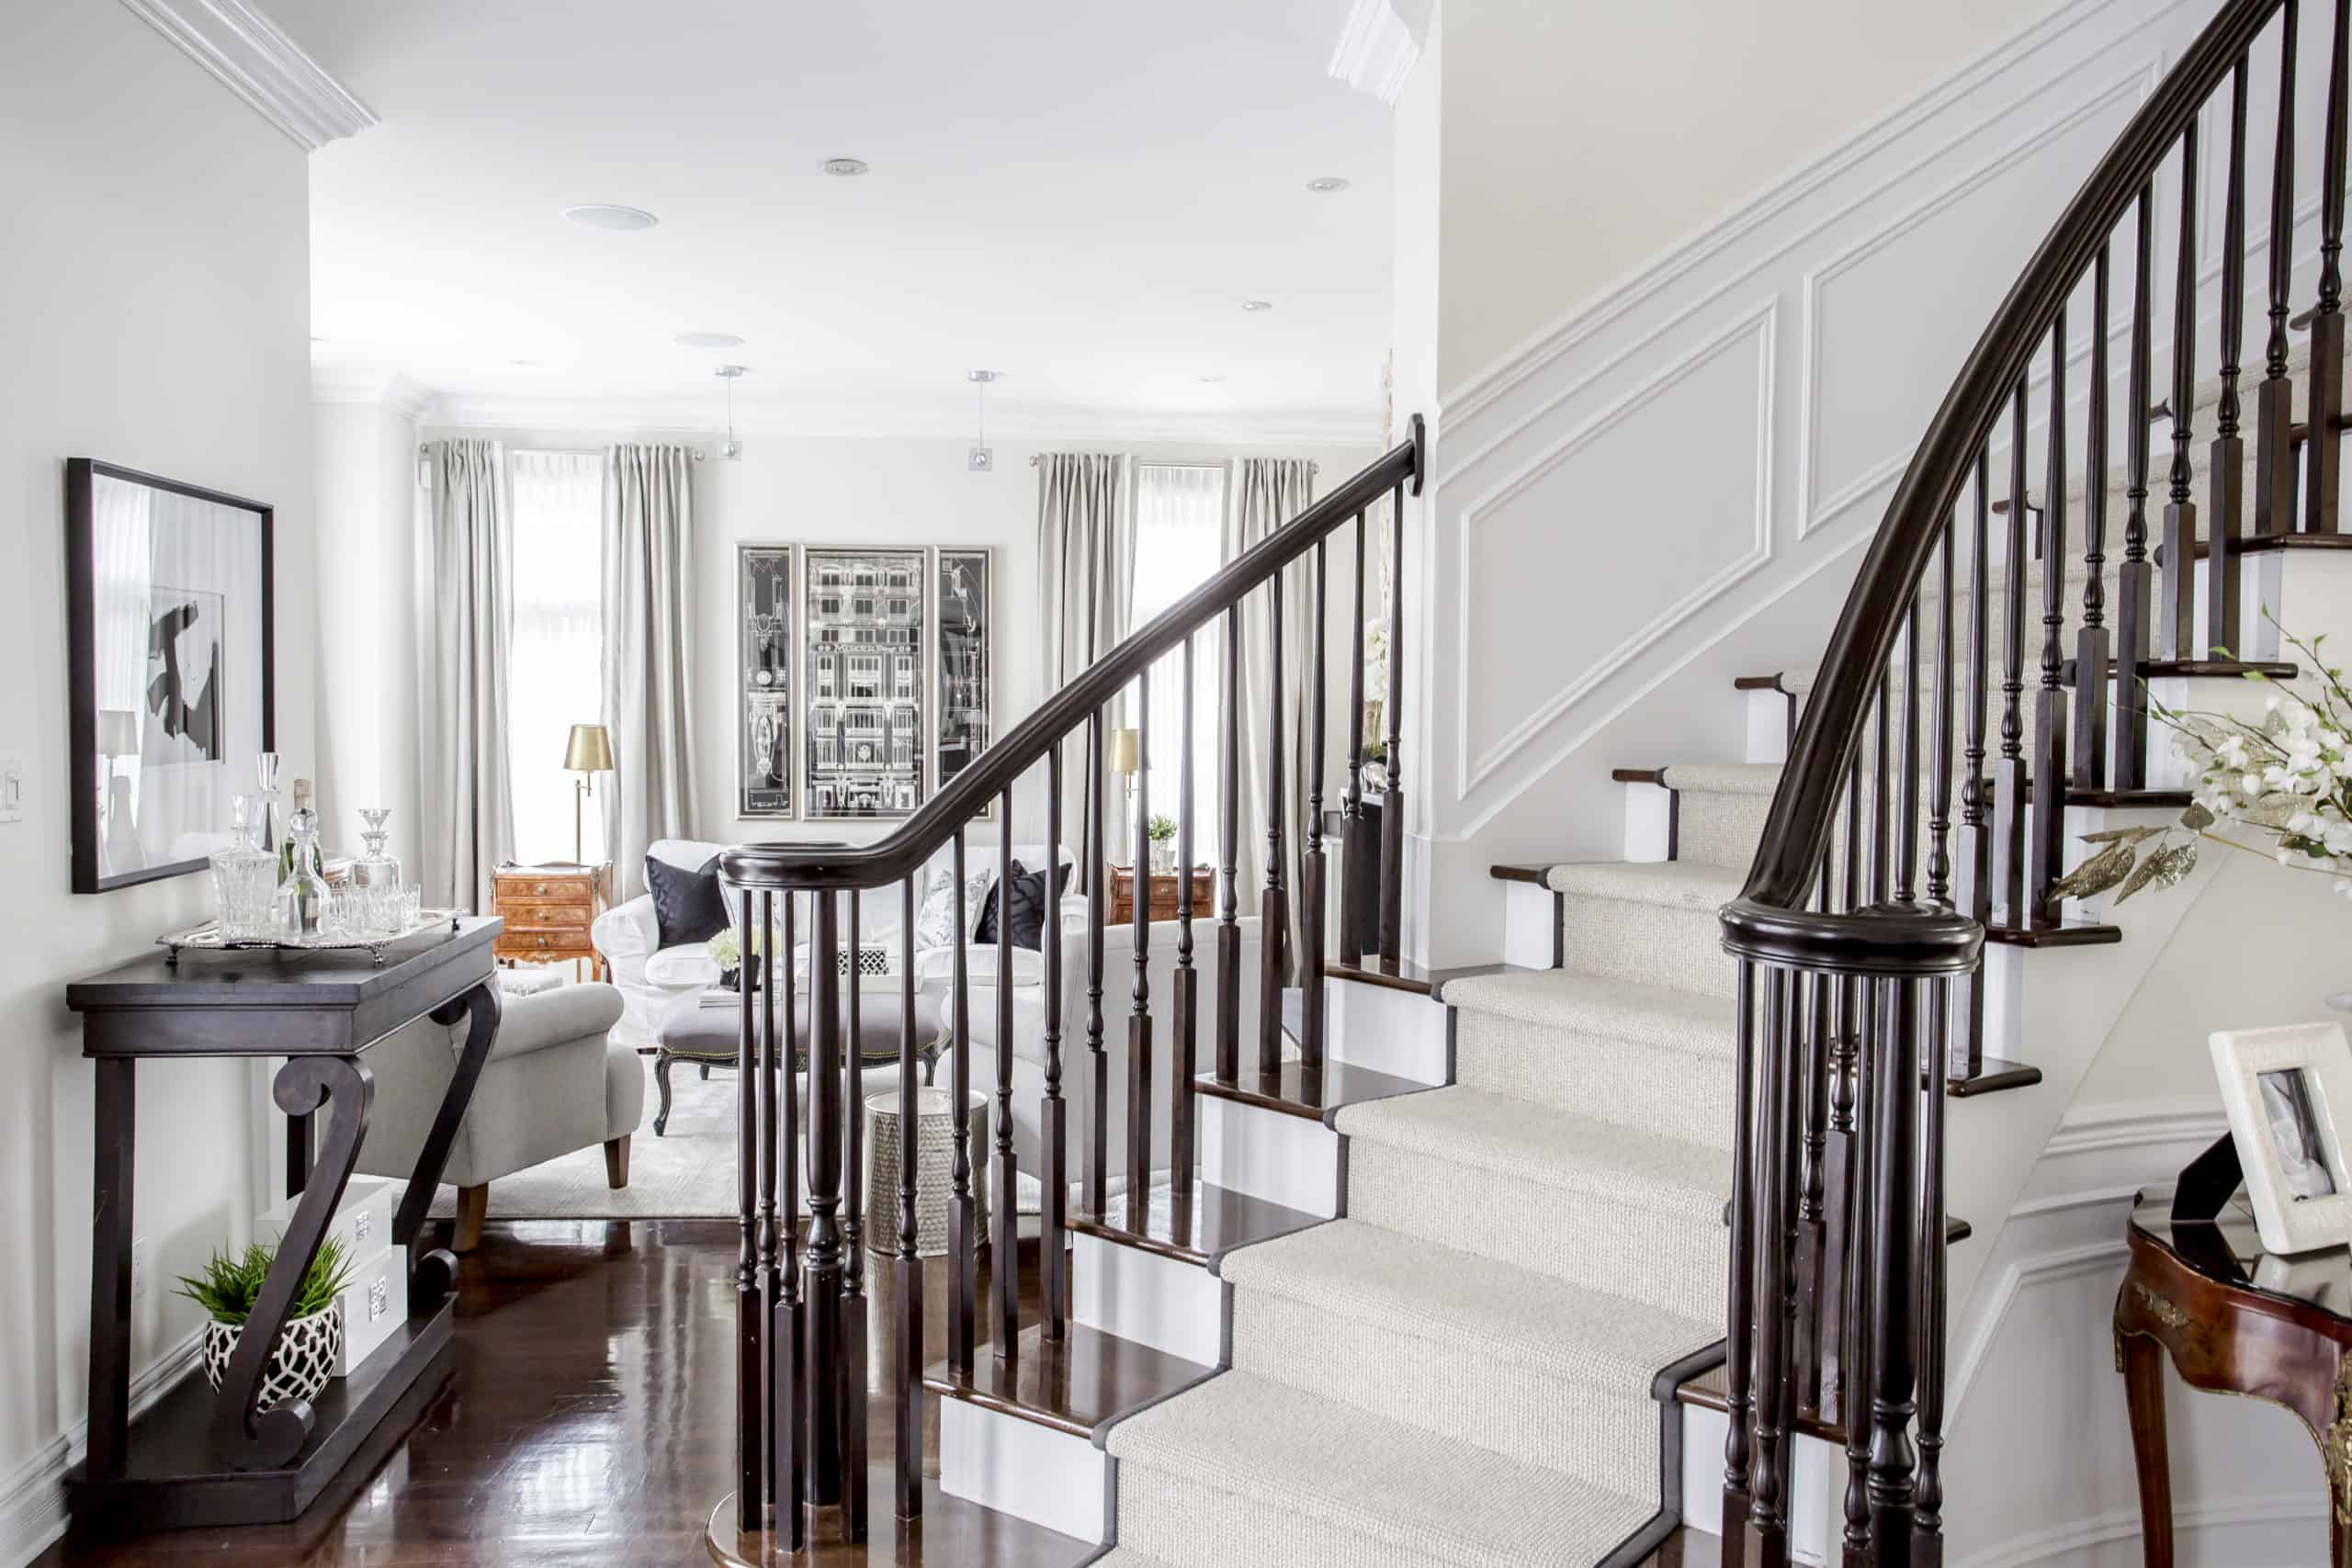 Modern staircase with a carpet on on it